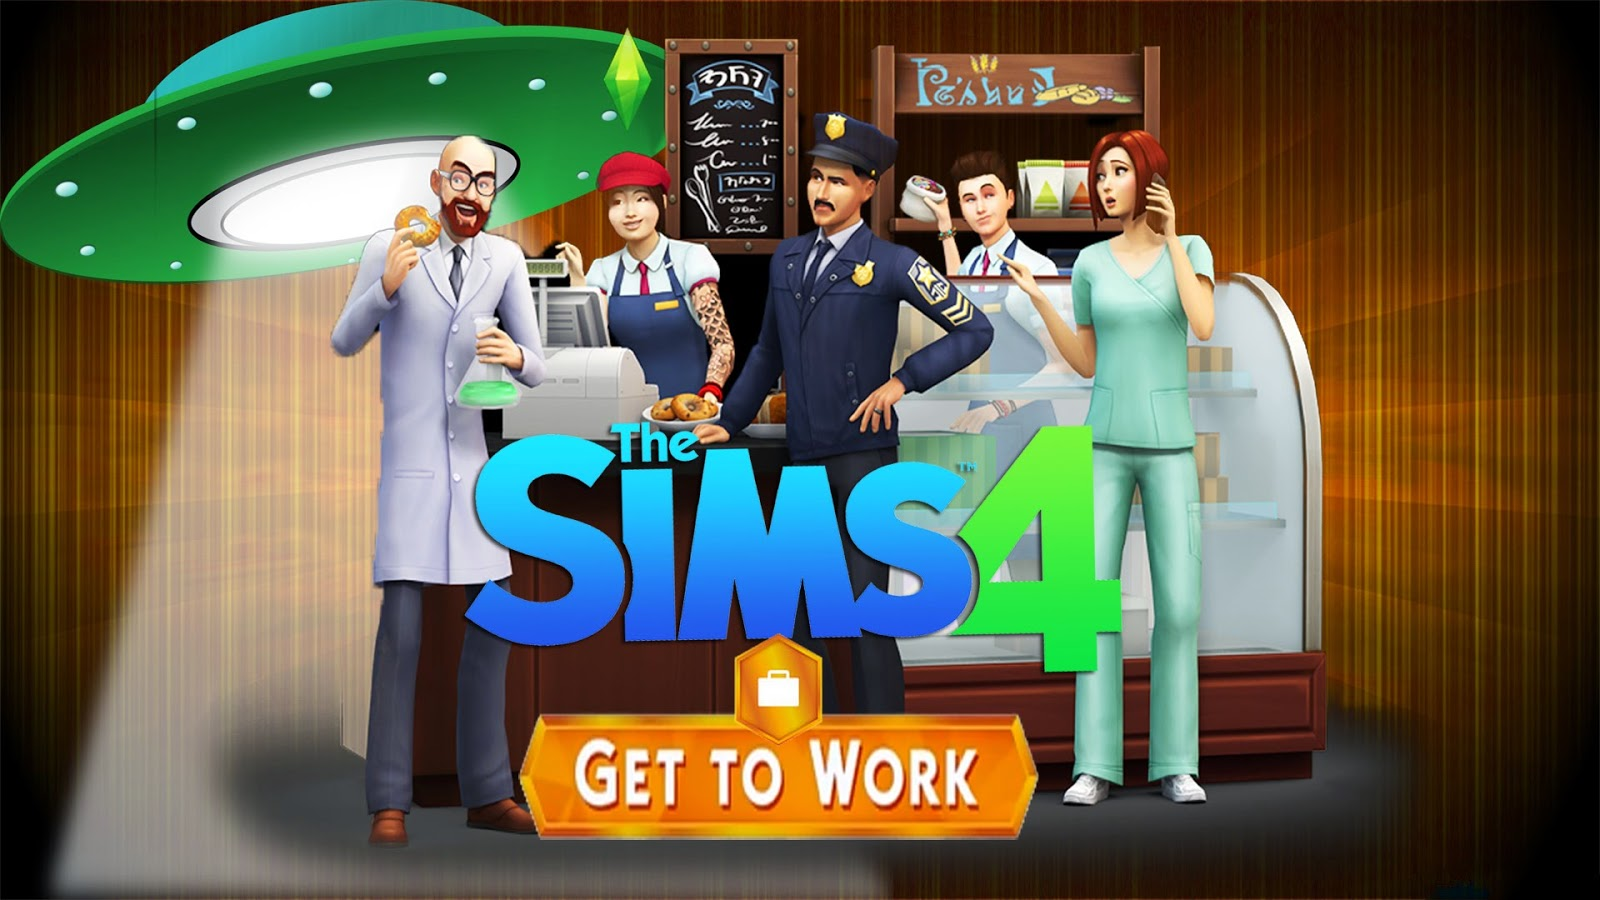 download crack update the sims 4 only reloaded